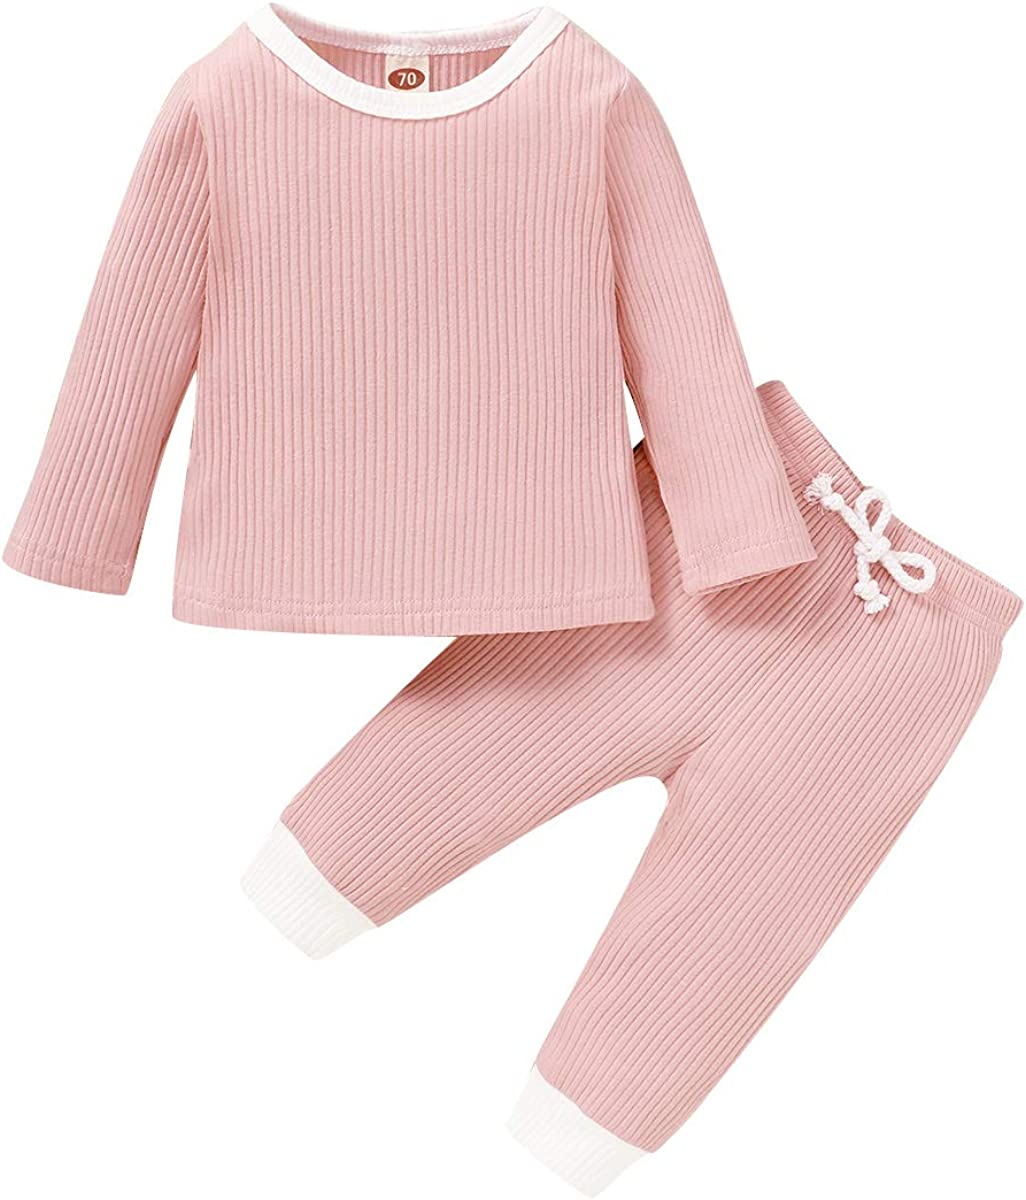 Baby Girls Clothes,Toddler Long Sleeve Sweatshirt Pullover Ruffle + Floral Pants